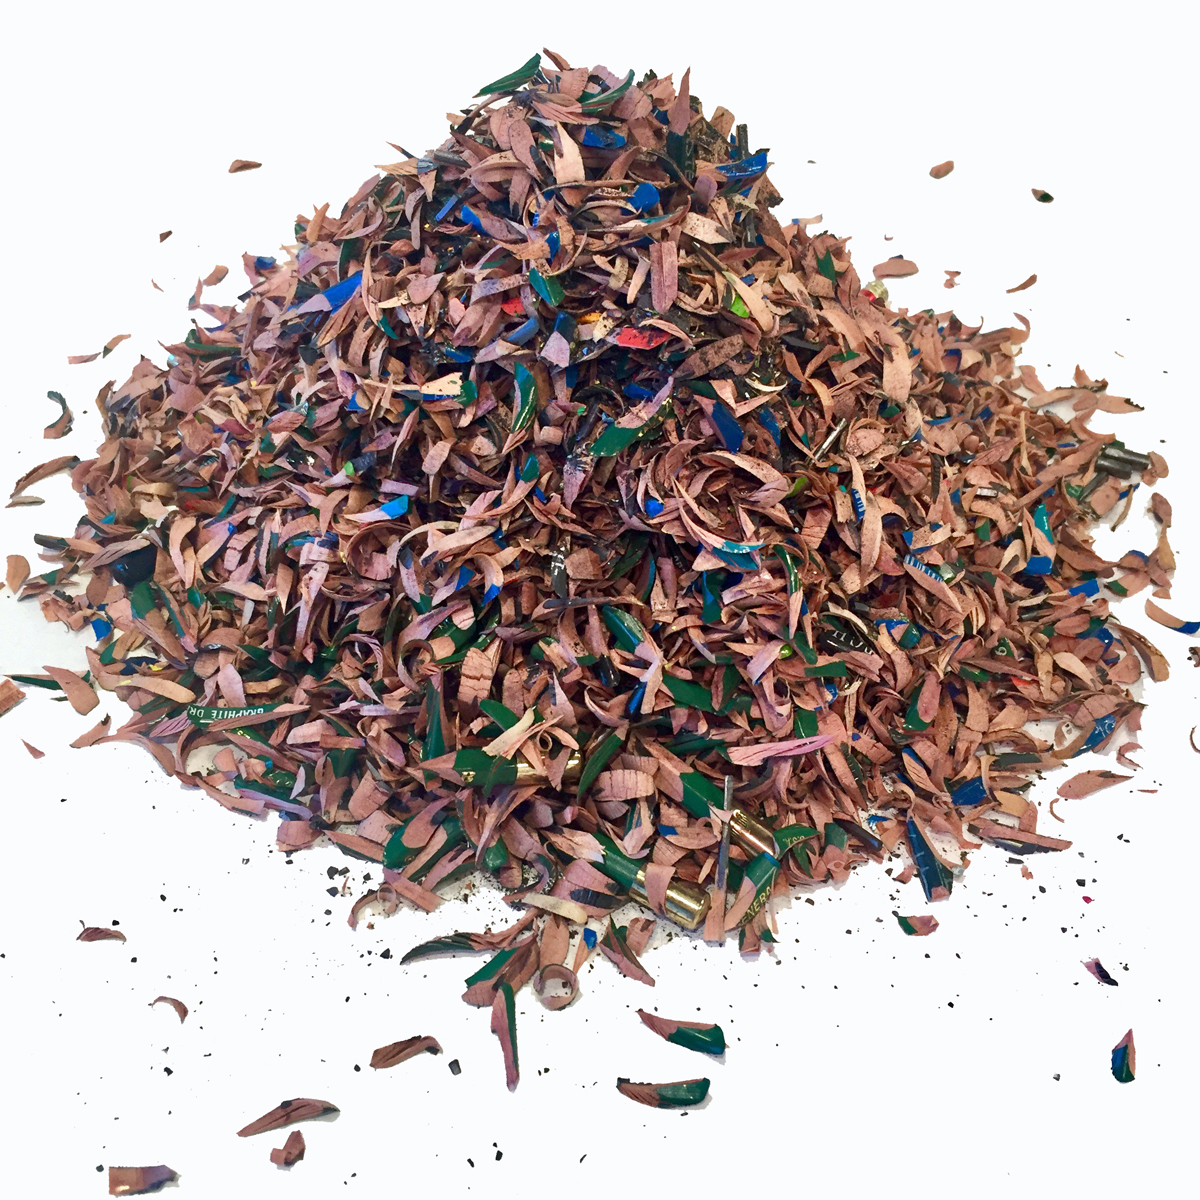 Sheila Ghidini, pencil shavings from various drawing projects, 2015-present.